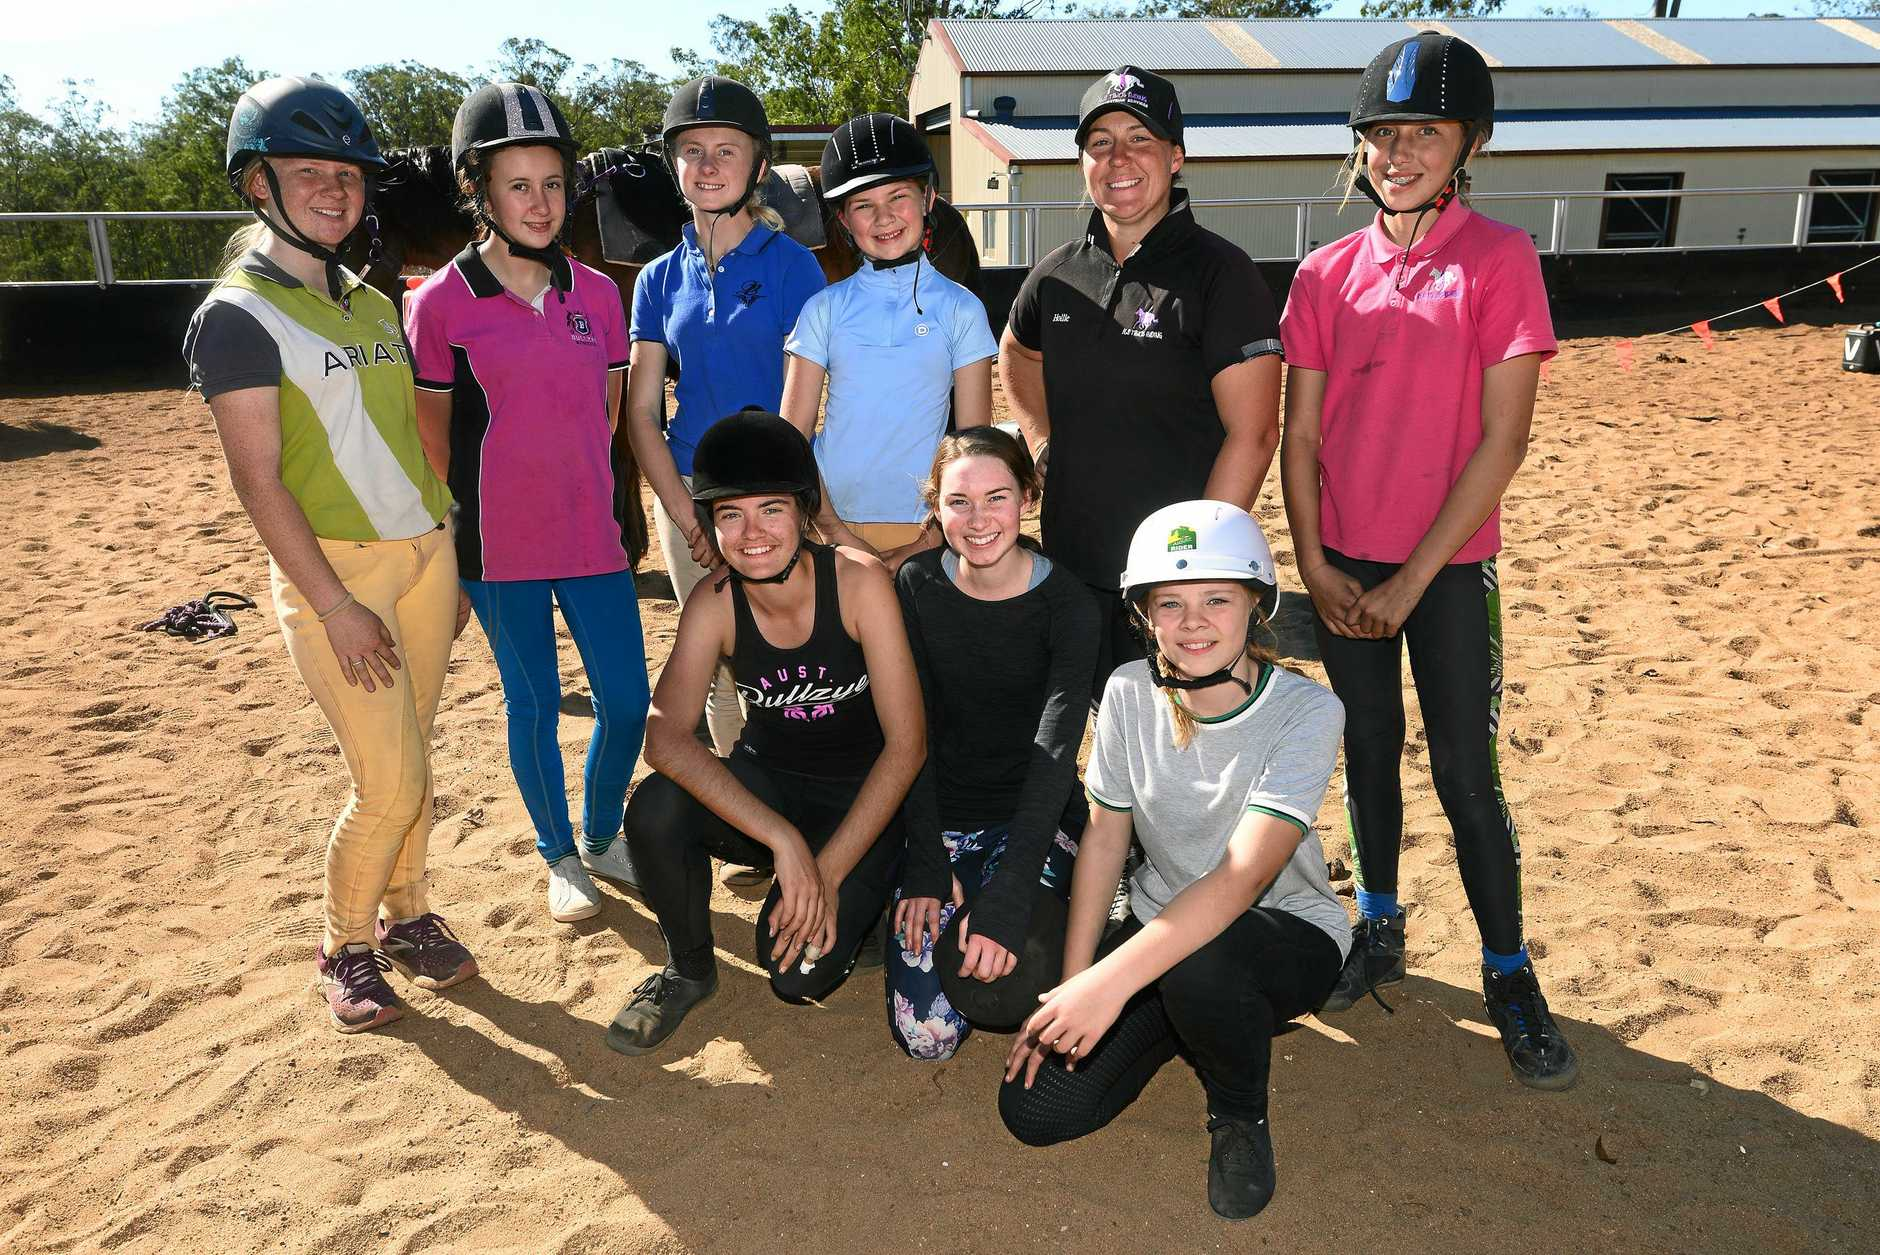 Billie Morgan, Danielle Wakelin and Sierra Marriott (front), Phoebe Whitaker, Millie Jensen-Austin, Annabella Gilliland, Emily Whitaker, Hollie Shiels and River Johnson (back).